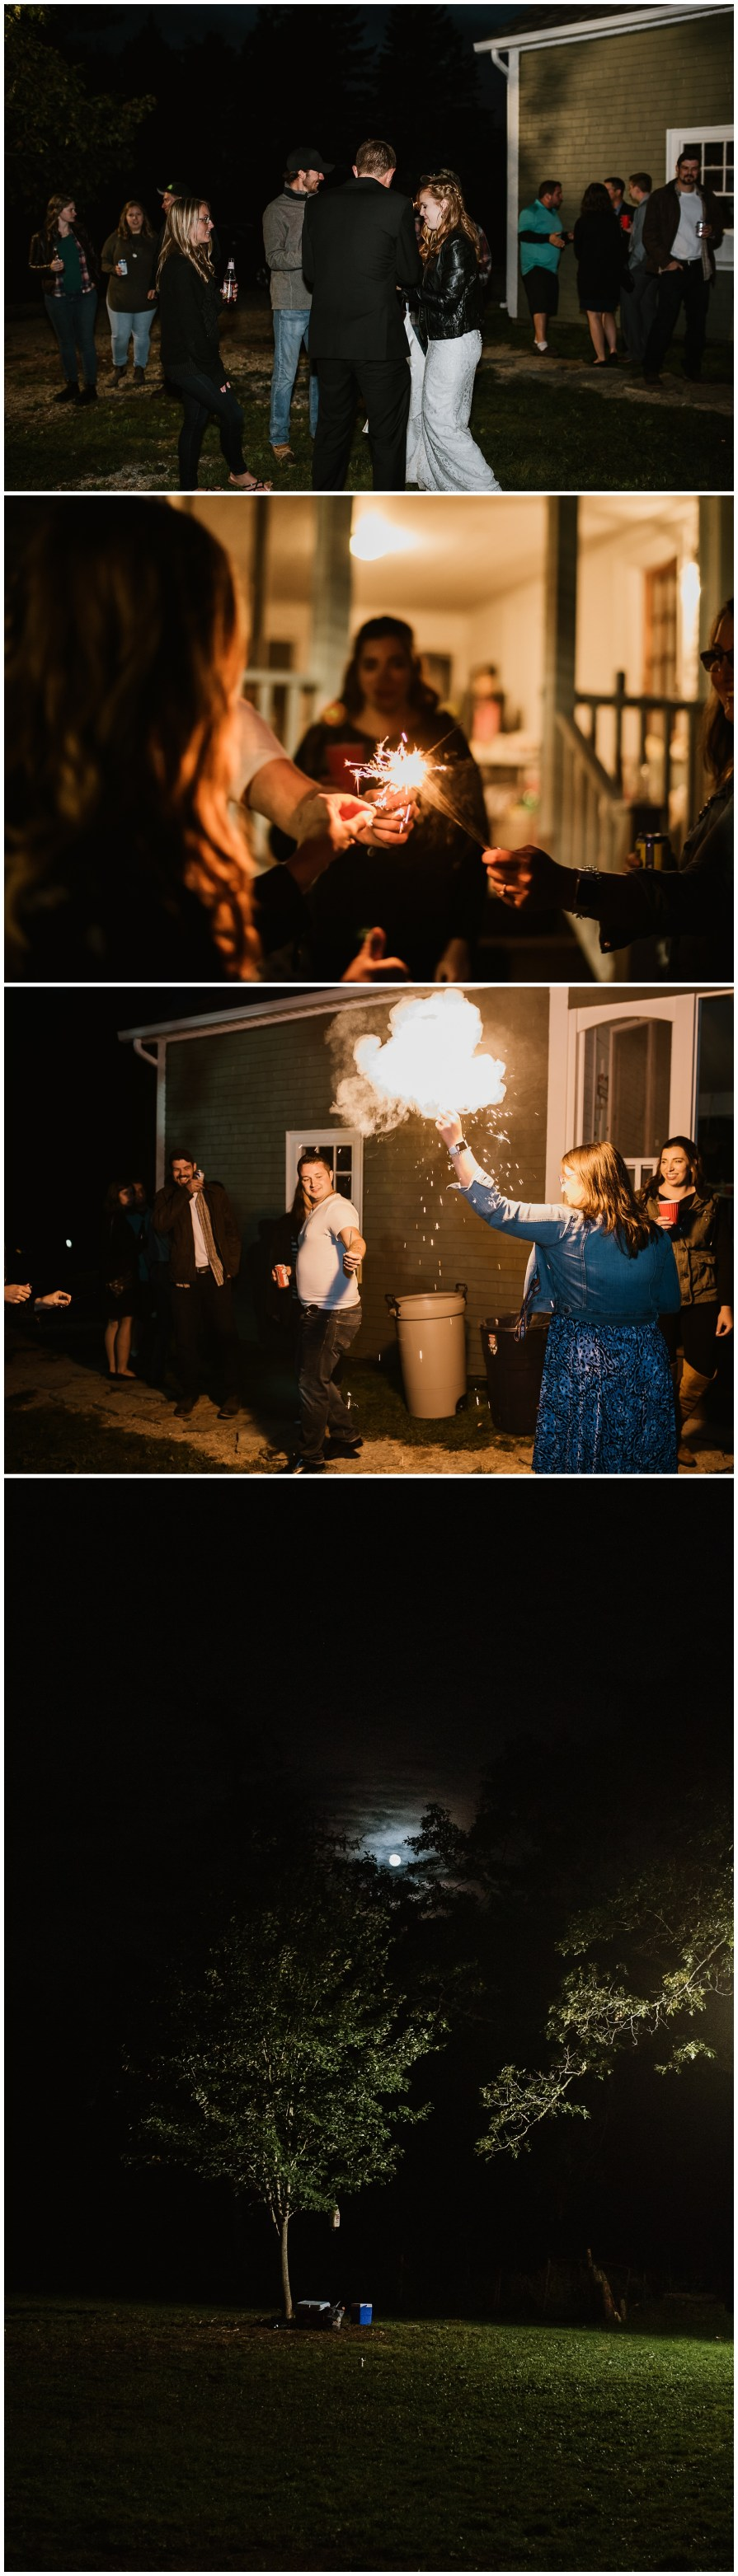 intimate-backyard-wedding-chester-nova-scotia_90.jpg